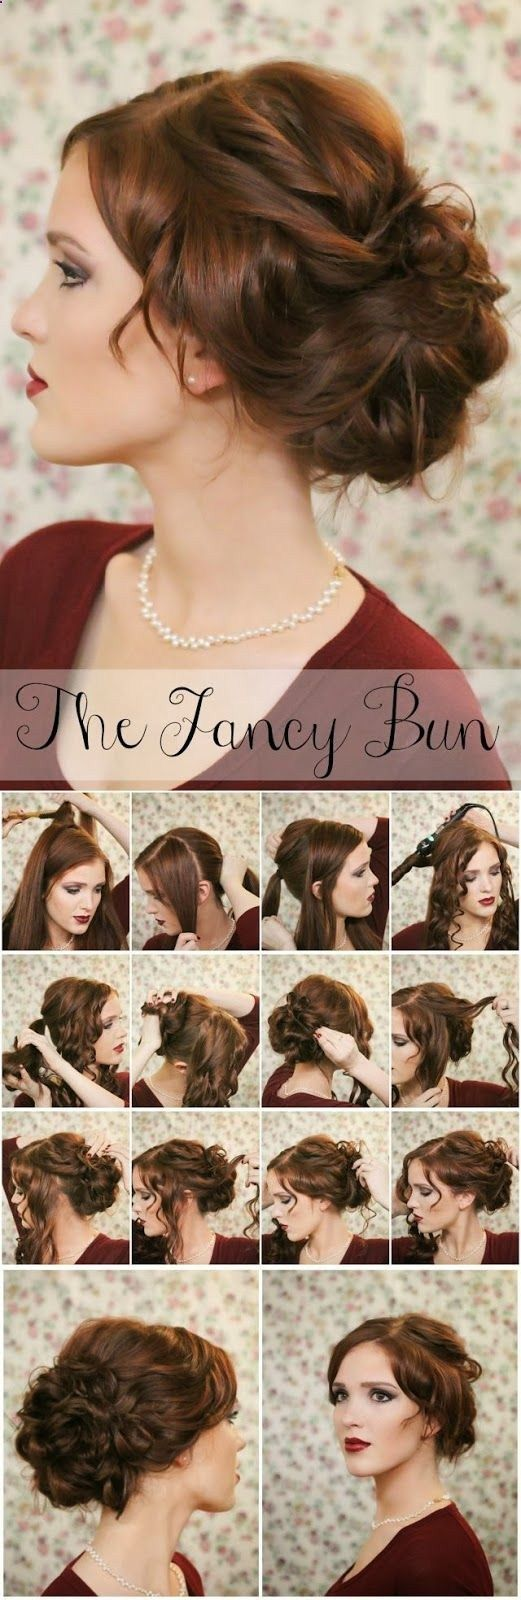 10 Pretty and Chic Updos for Medium Length Hair - Pretty Designs